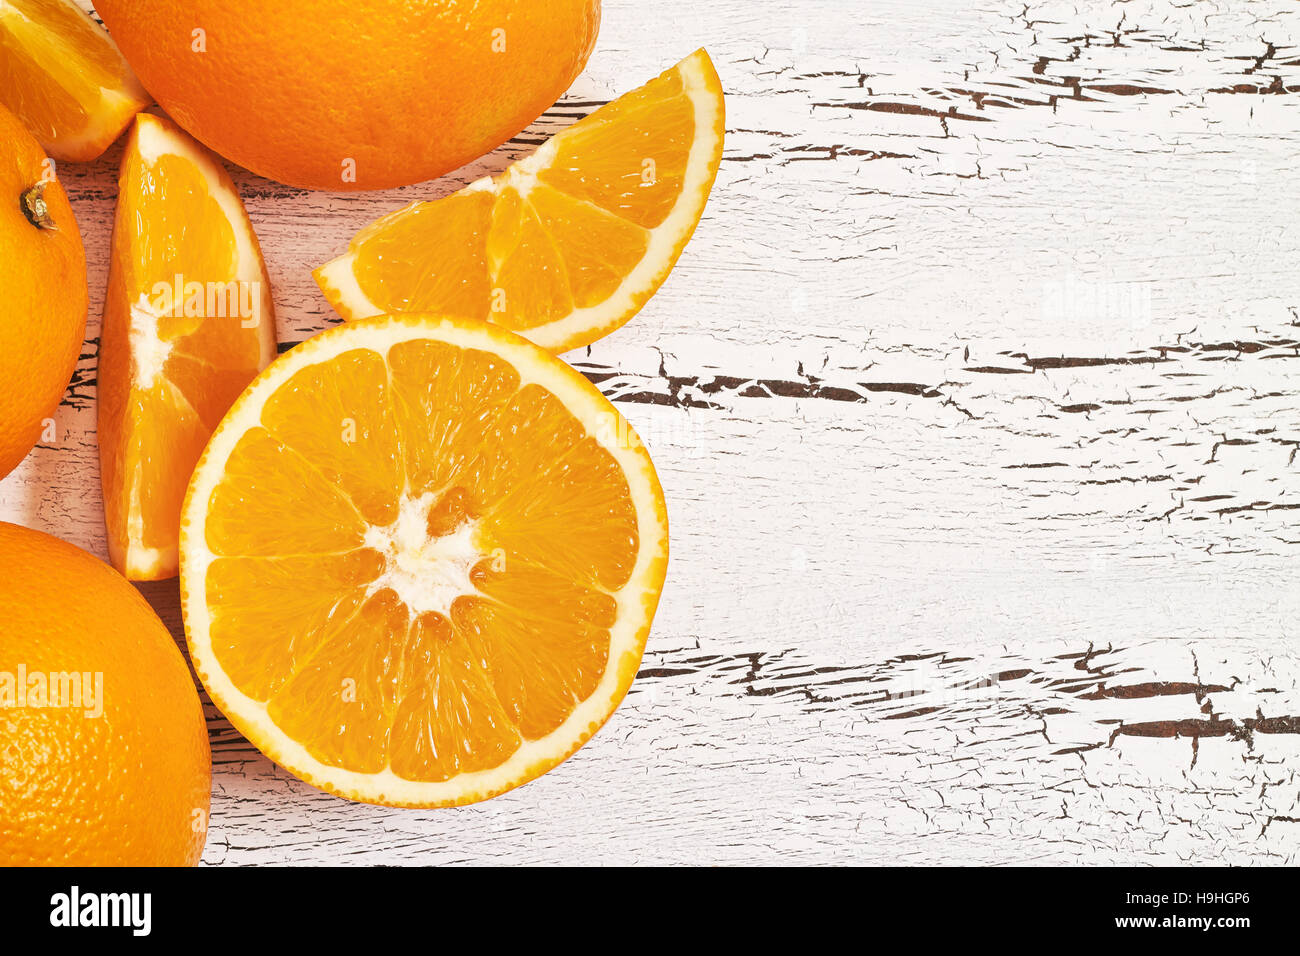 Oranges on white rustic wooden background. Top view with copy space - Stock Image